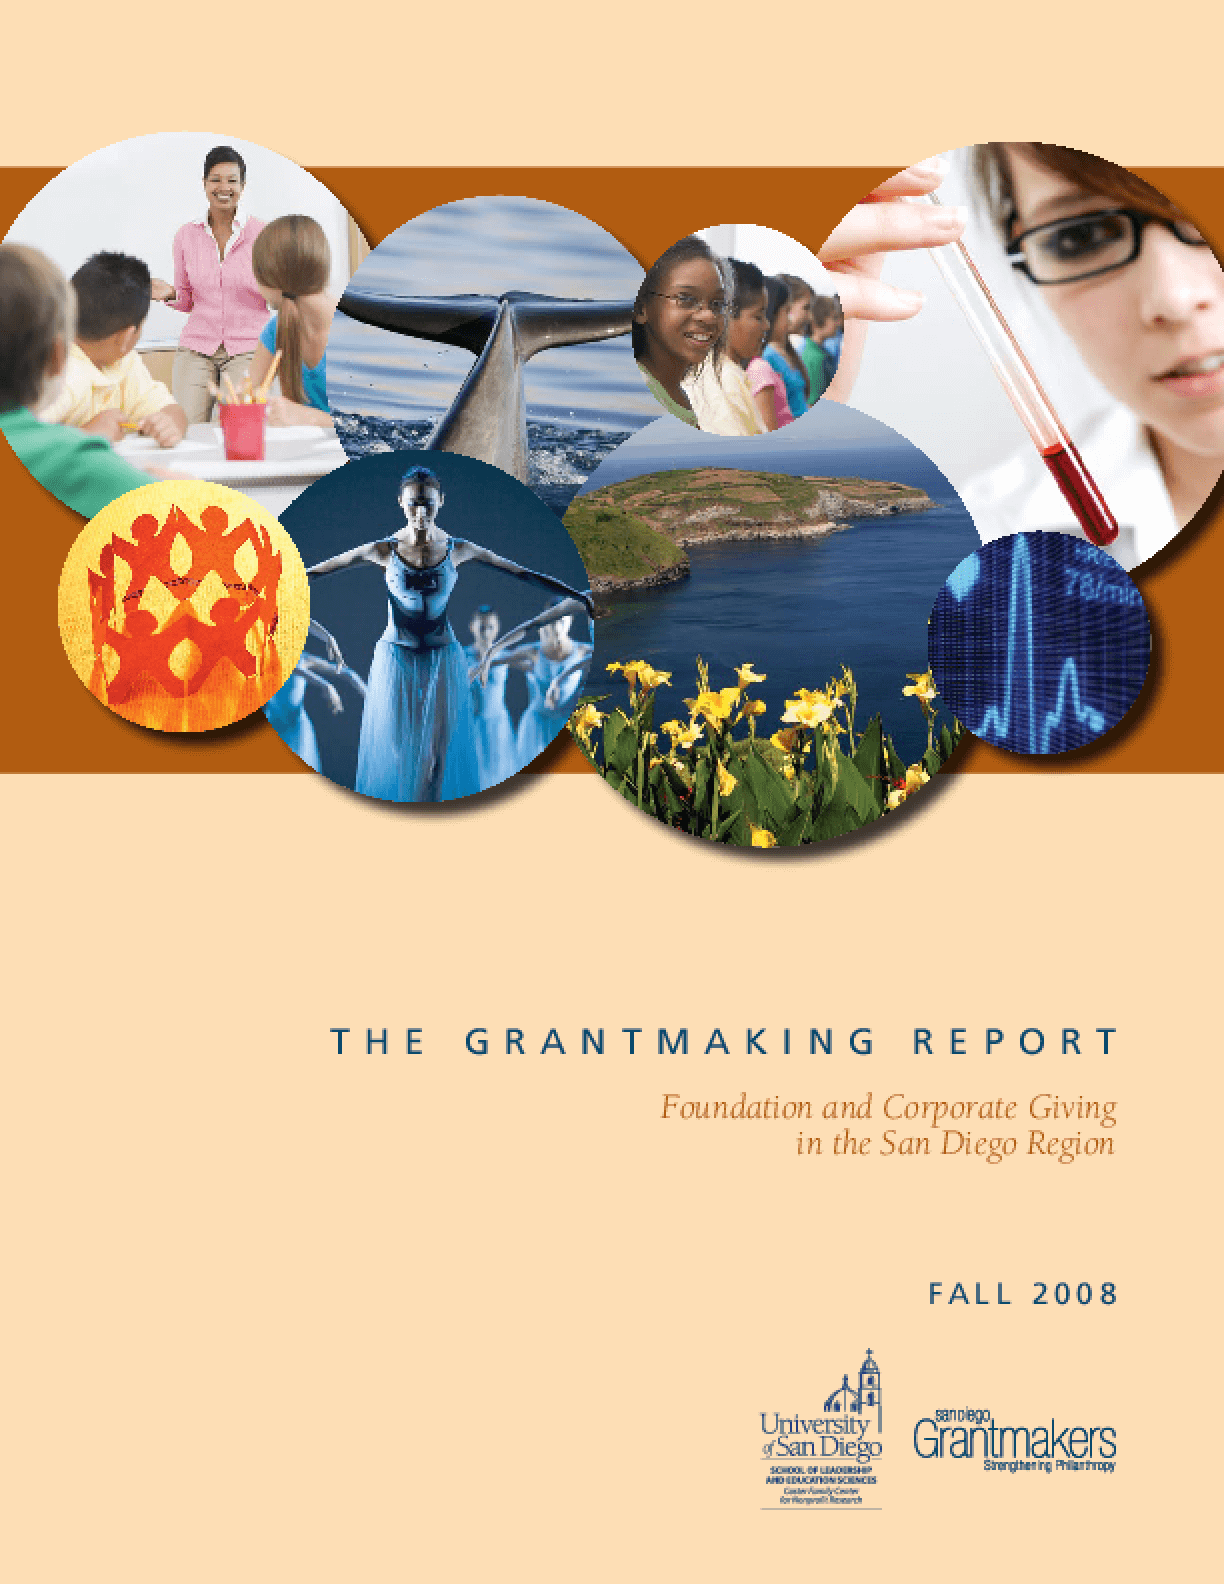 The Grantmaking Report: Foundation and Corporate Giving in the San Diego Region